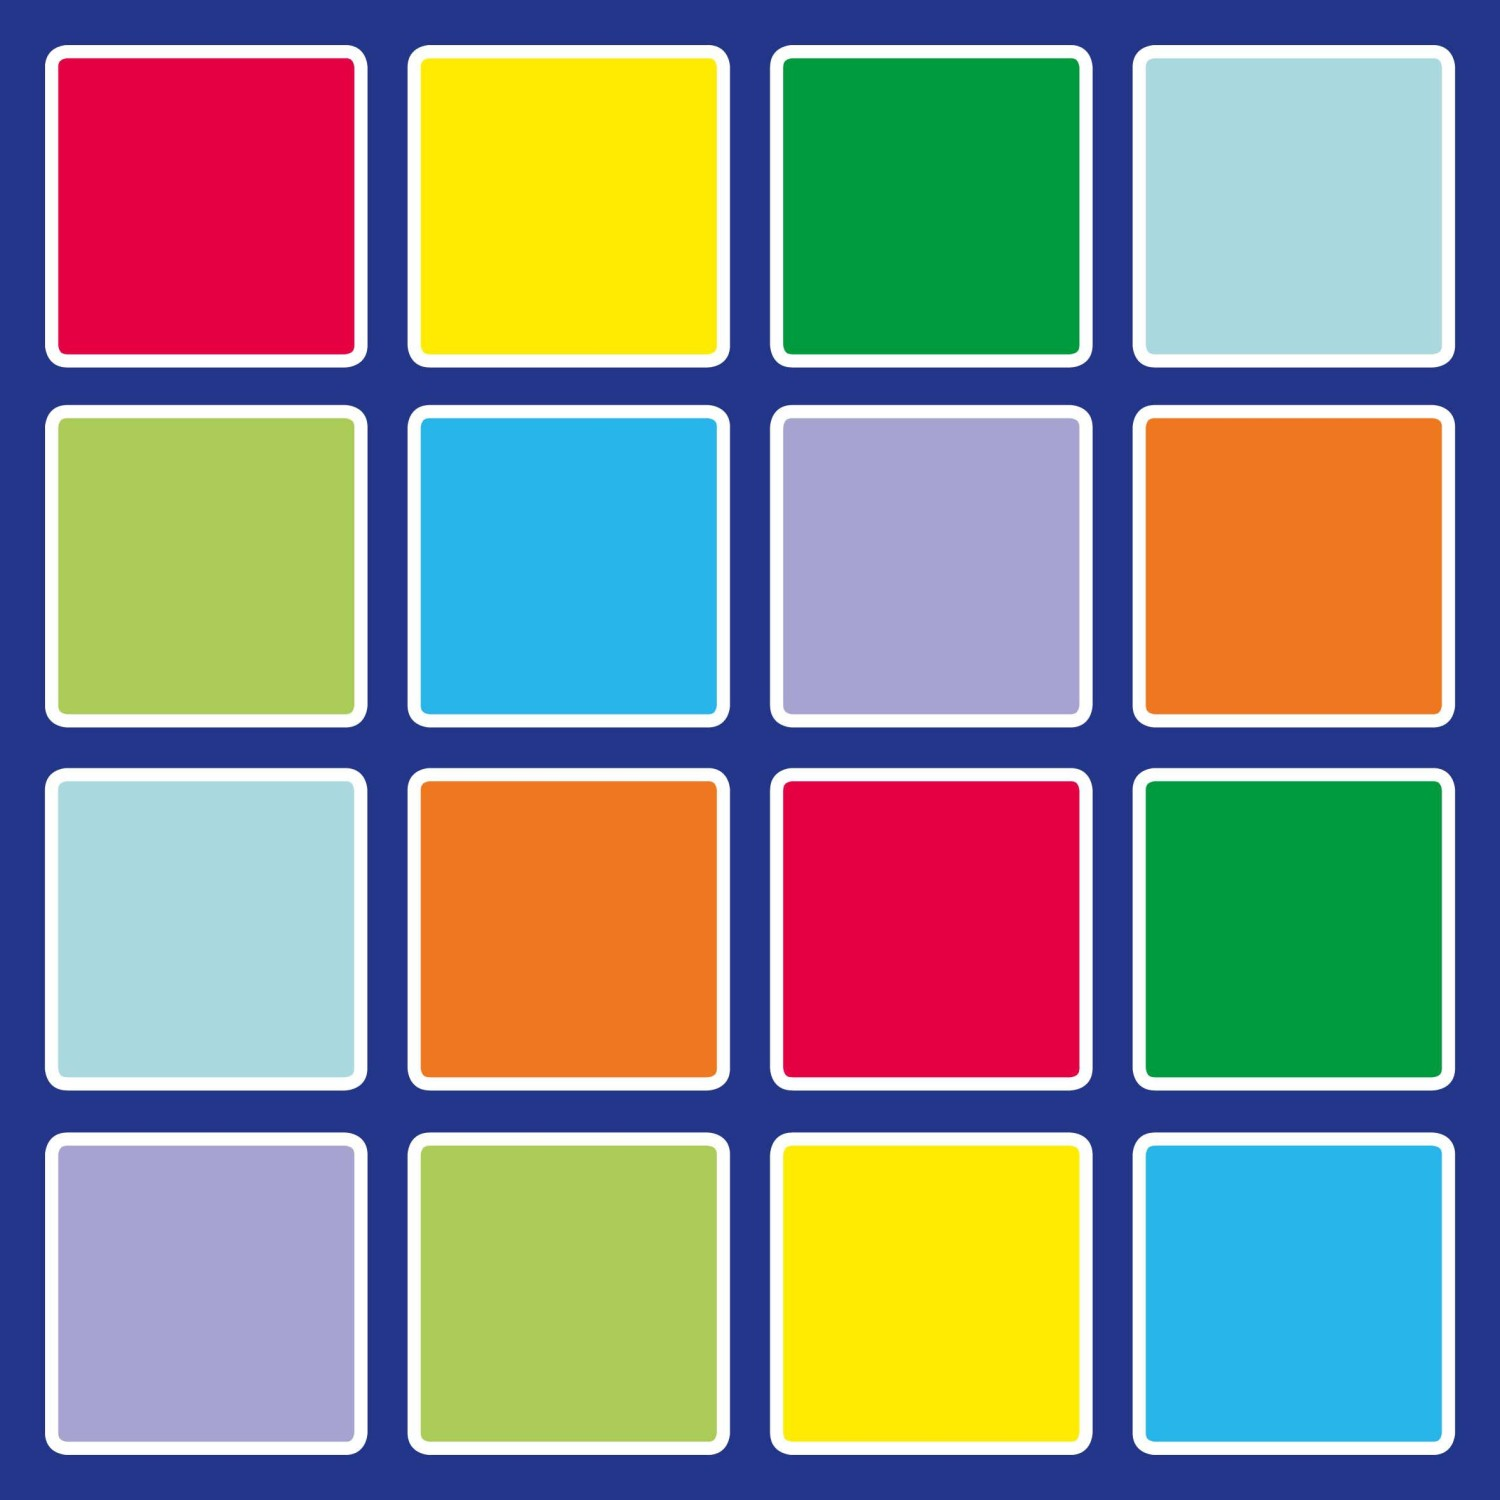 An image of Rainbow Square Placement Carpet